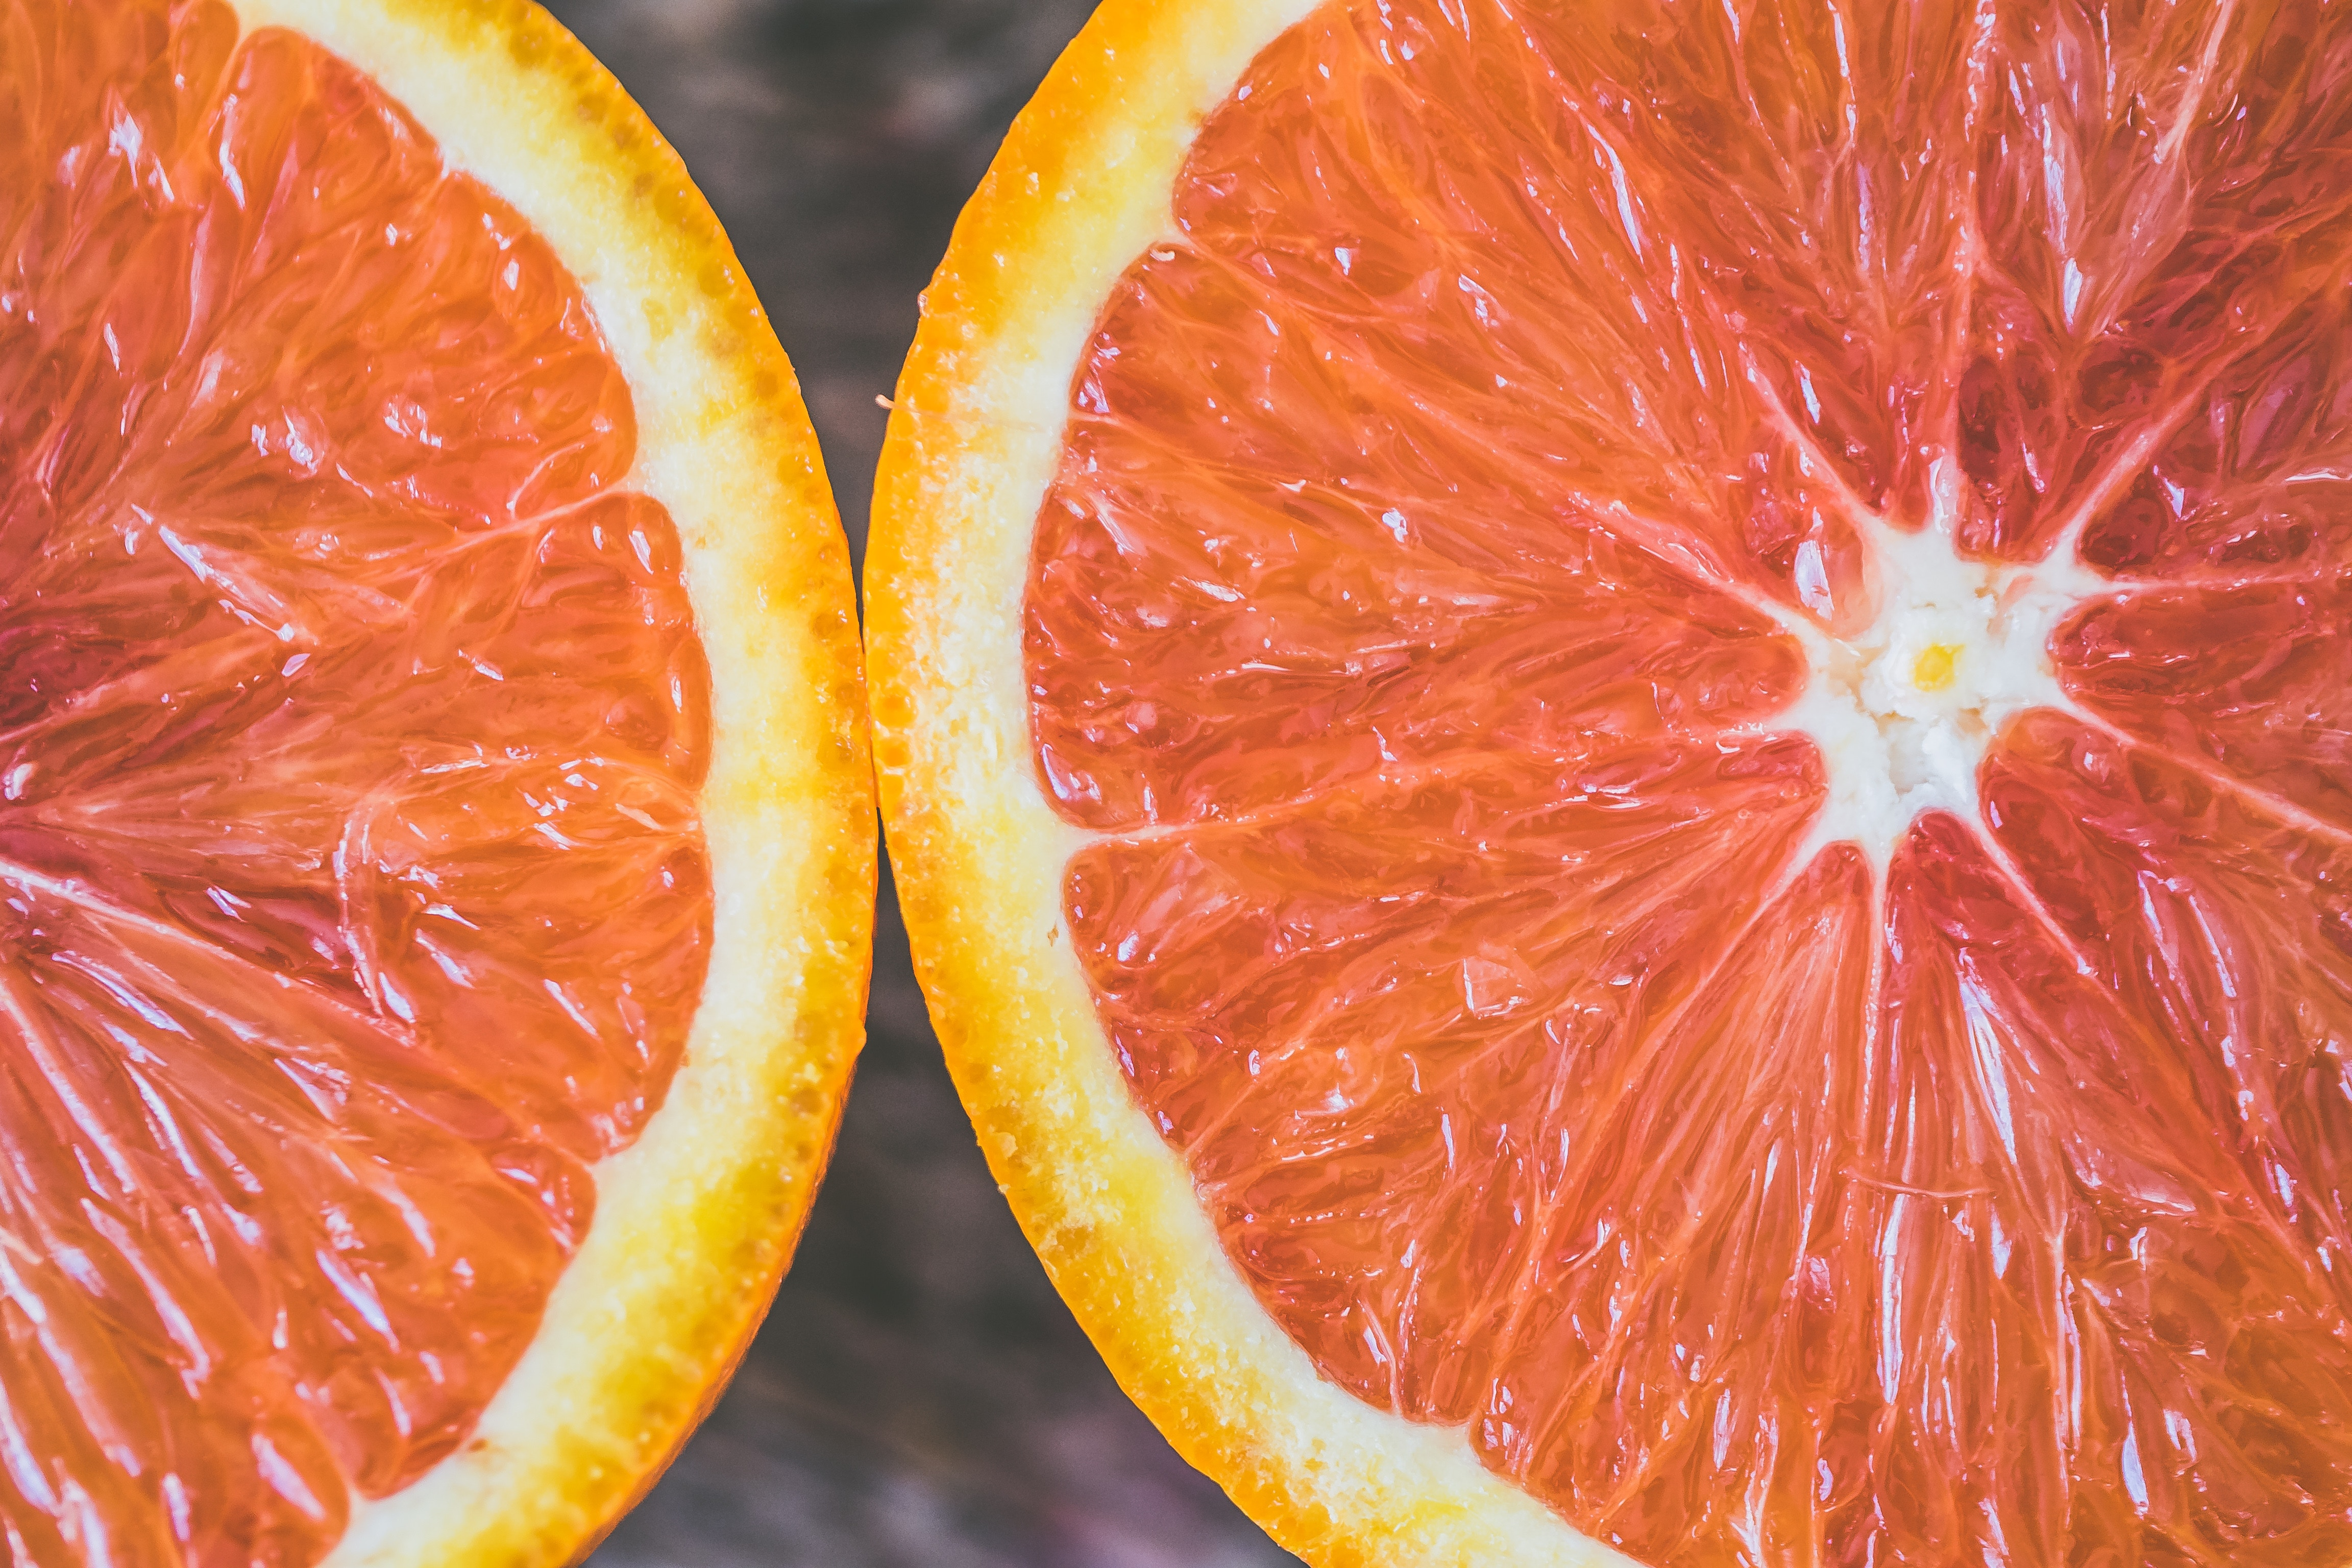 109562 download wallpaper Food, Citrus, Ripe, Slice, Section screensavers and pictures for free